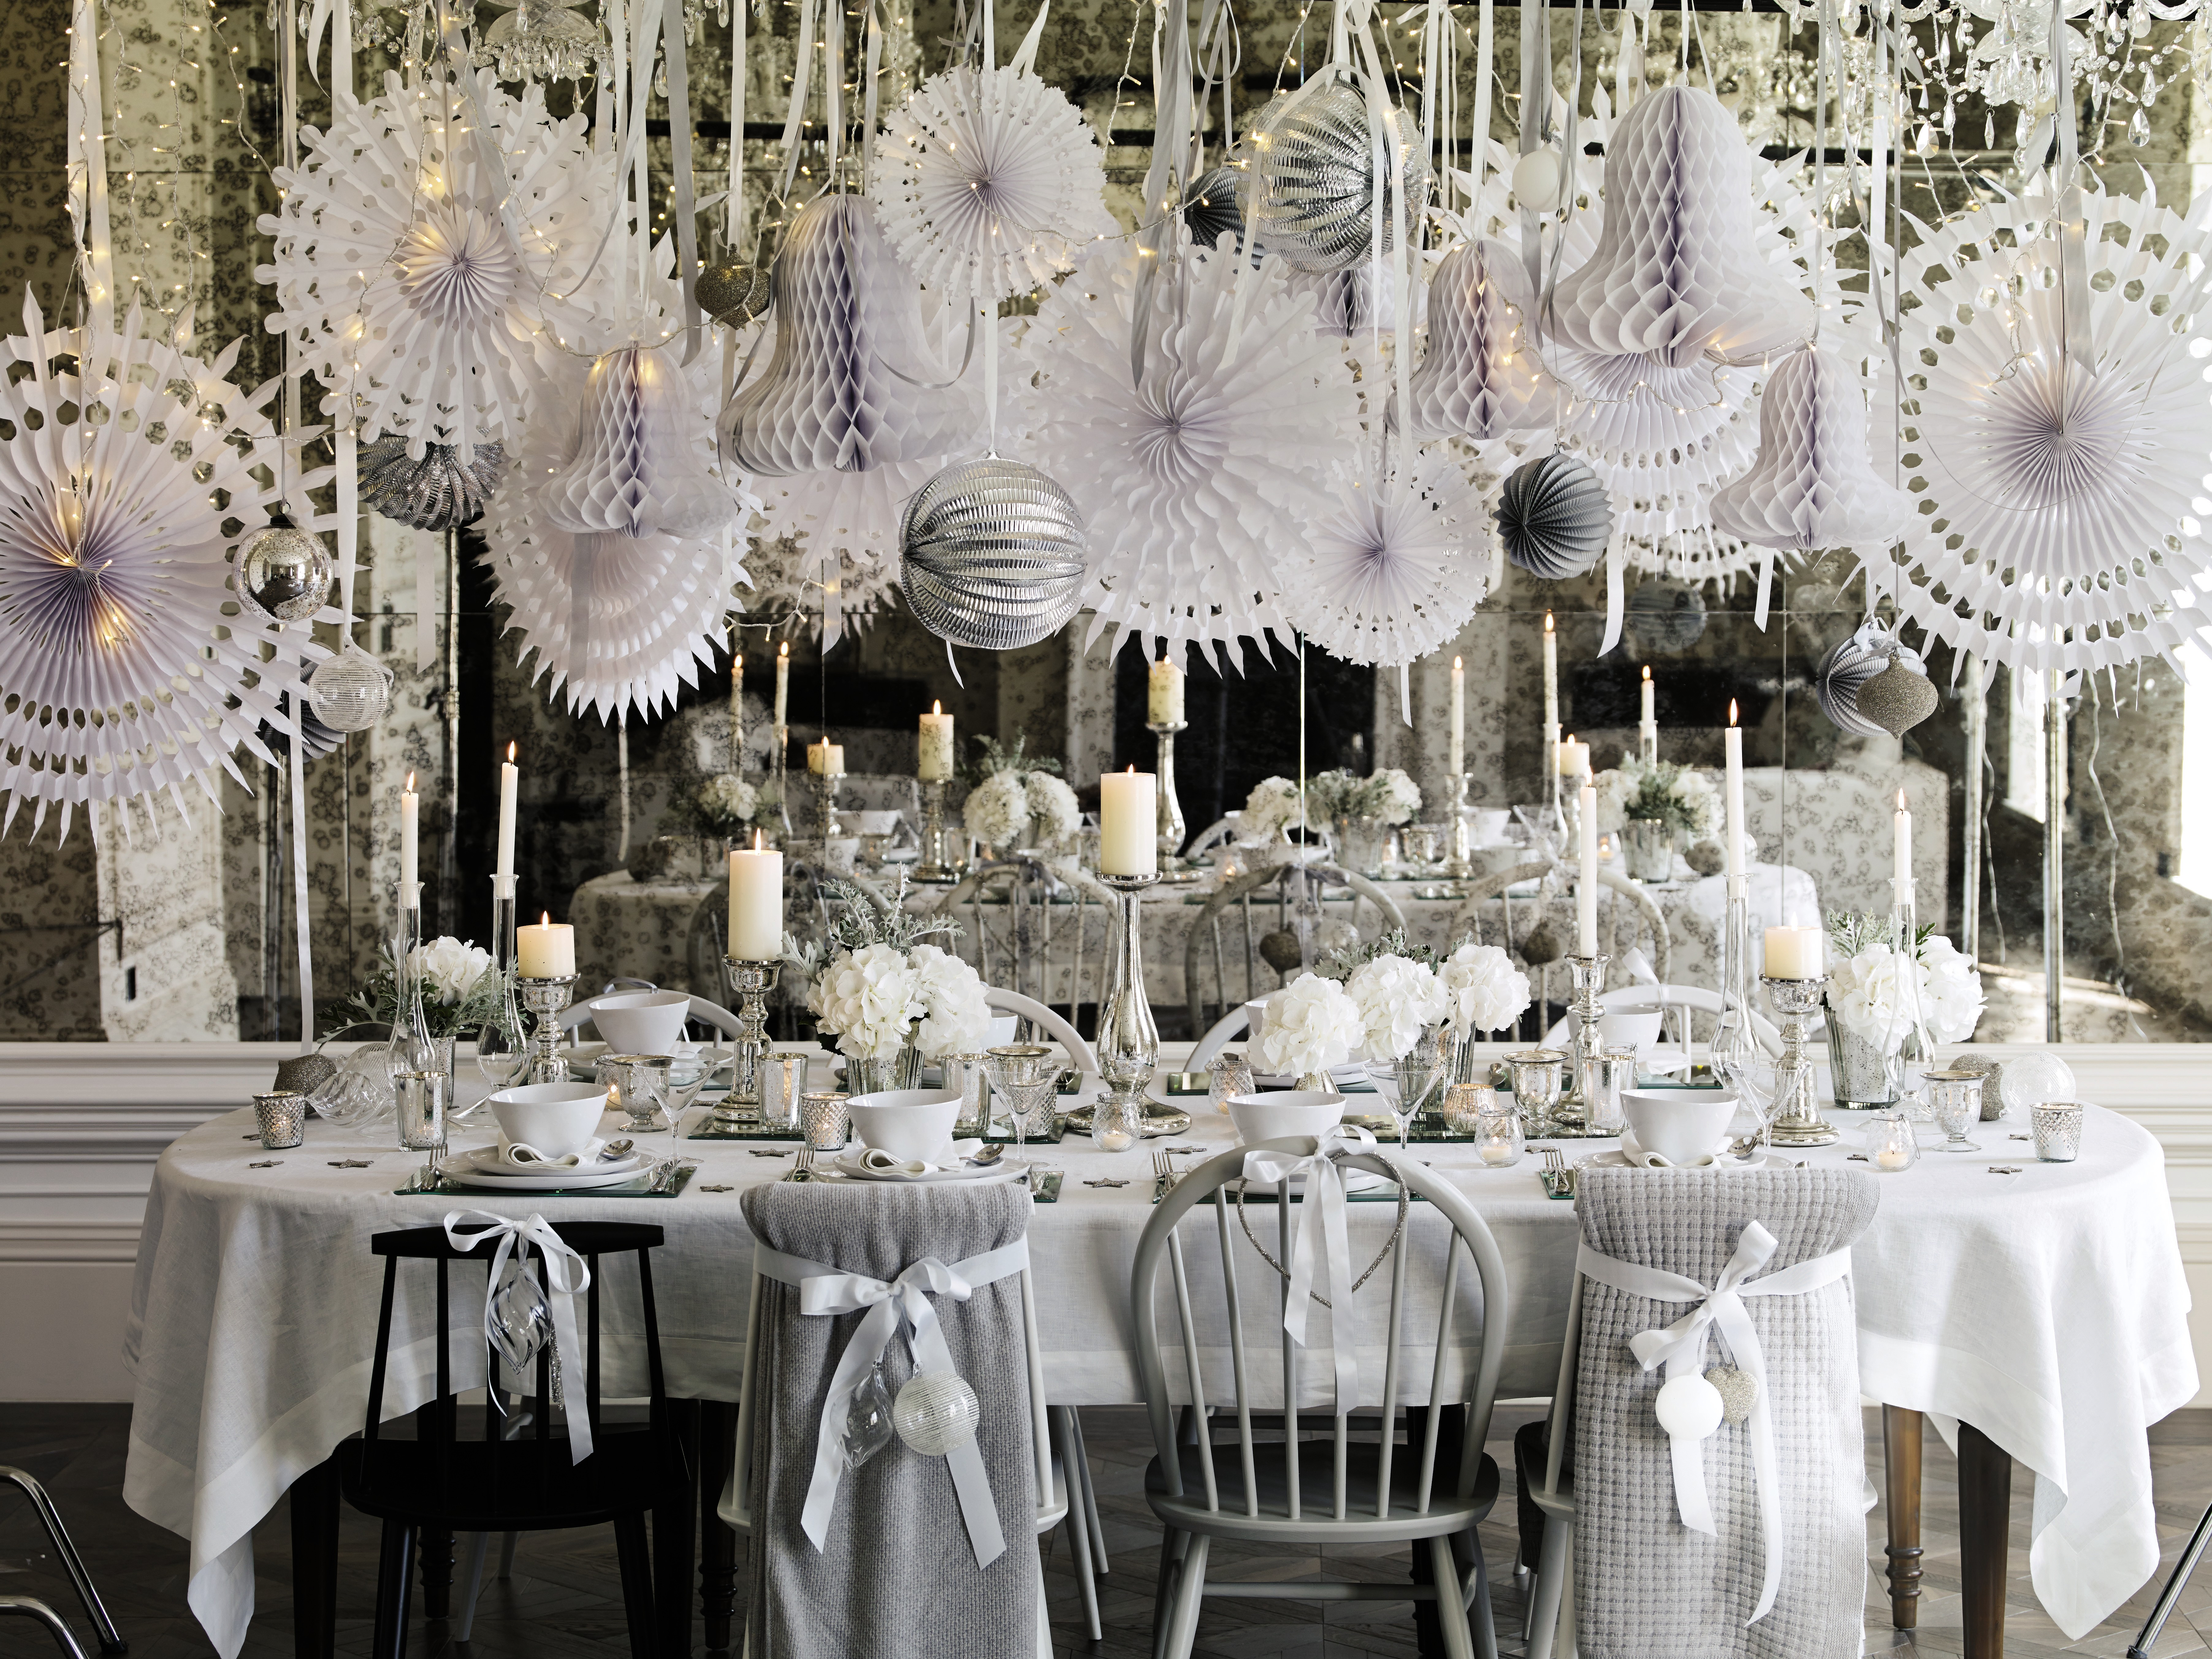 Silver and white christmas table decorations - Cahpg_xs14_l_h011_v2_kb